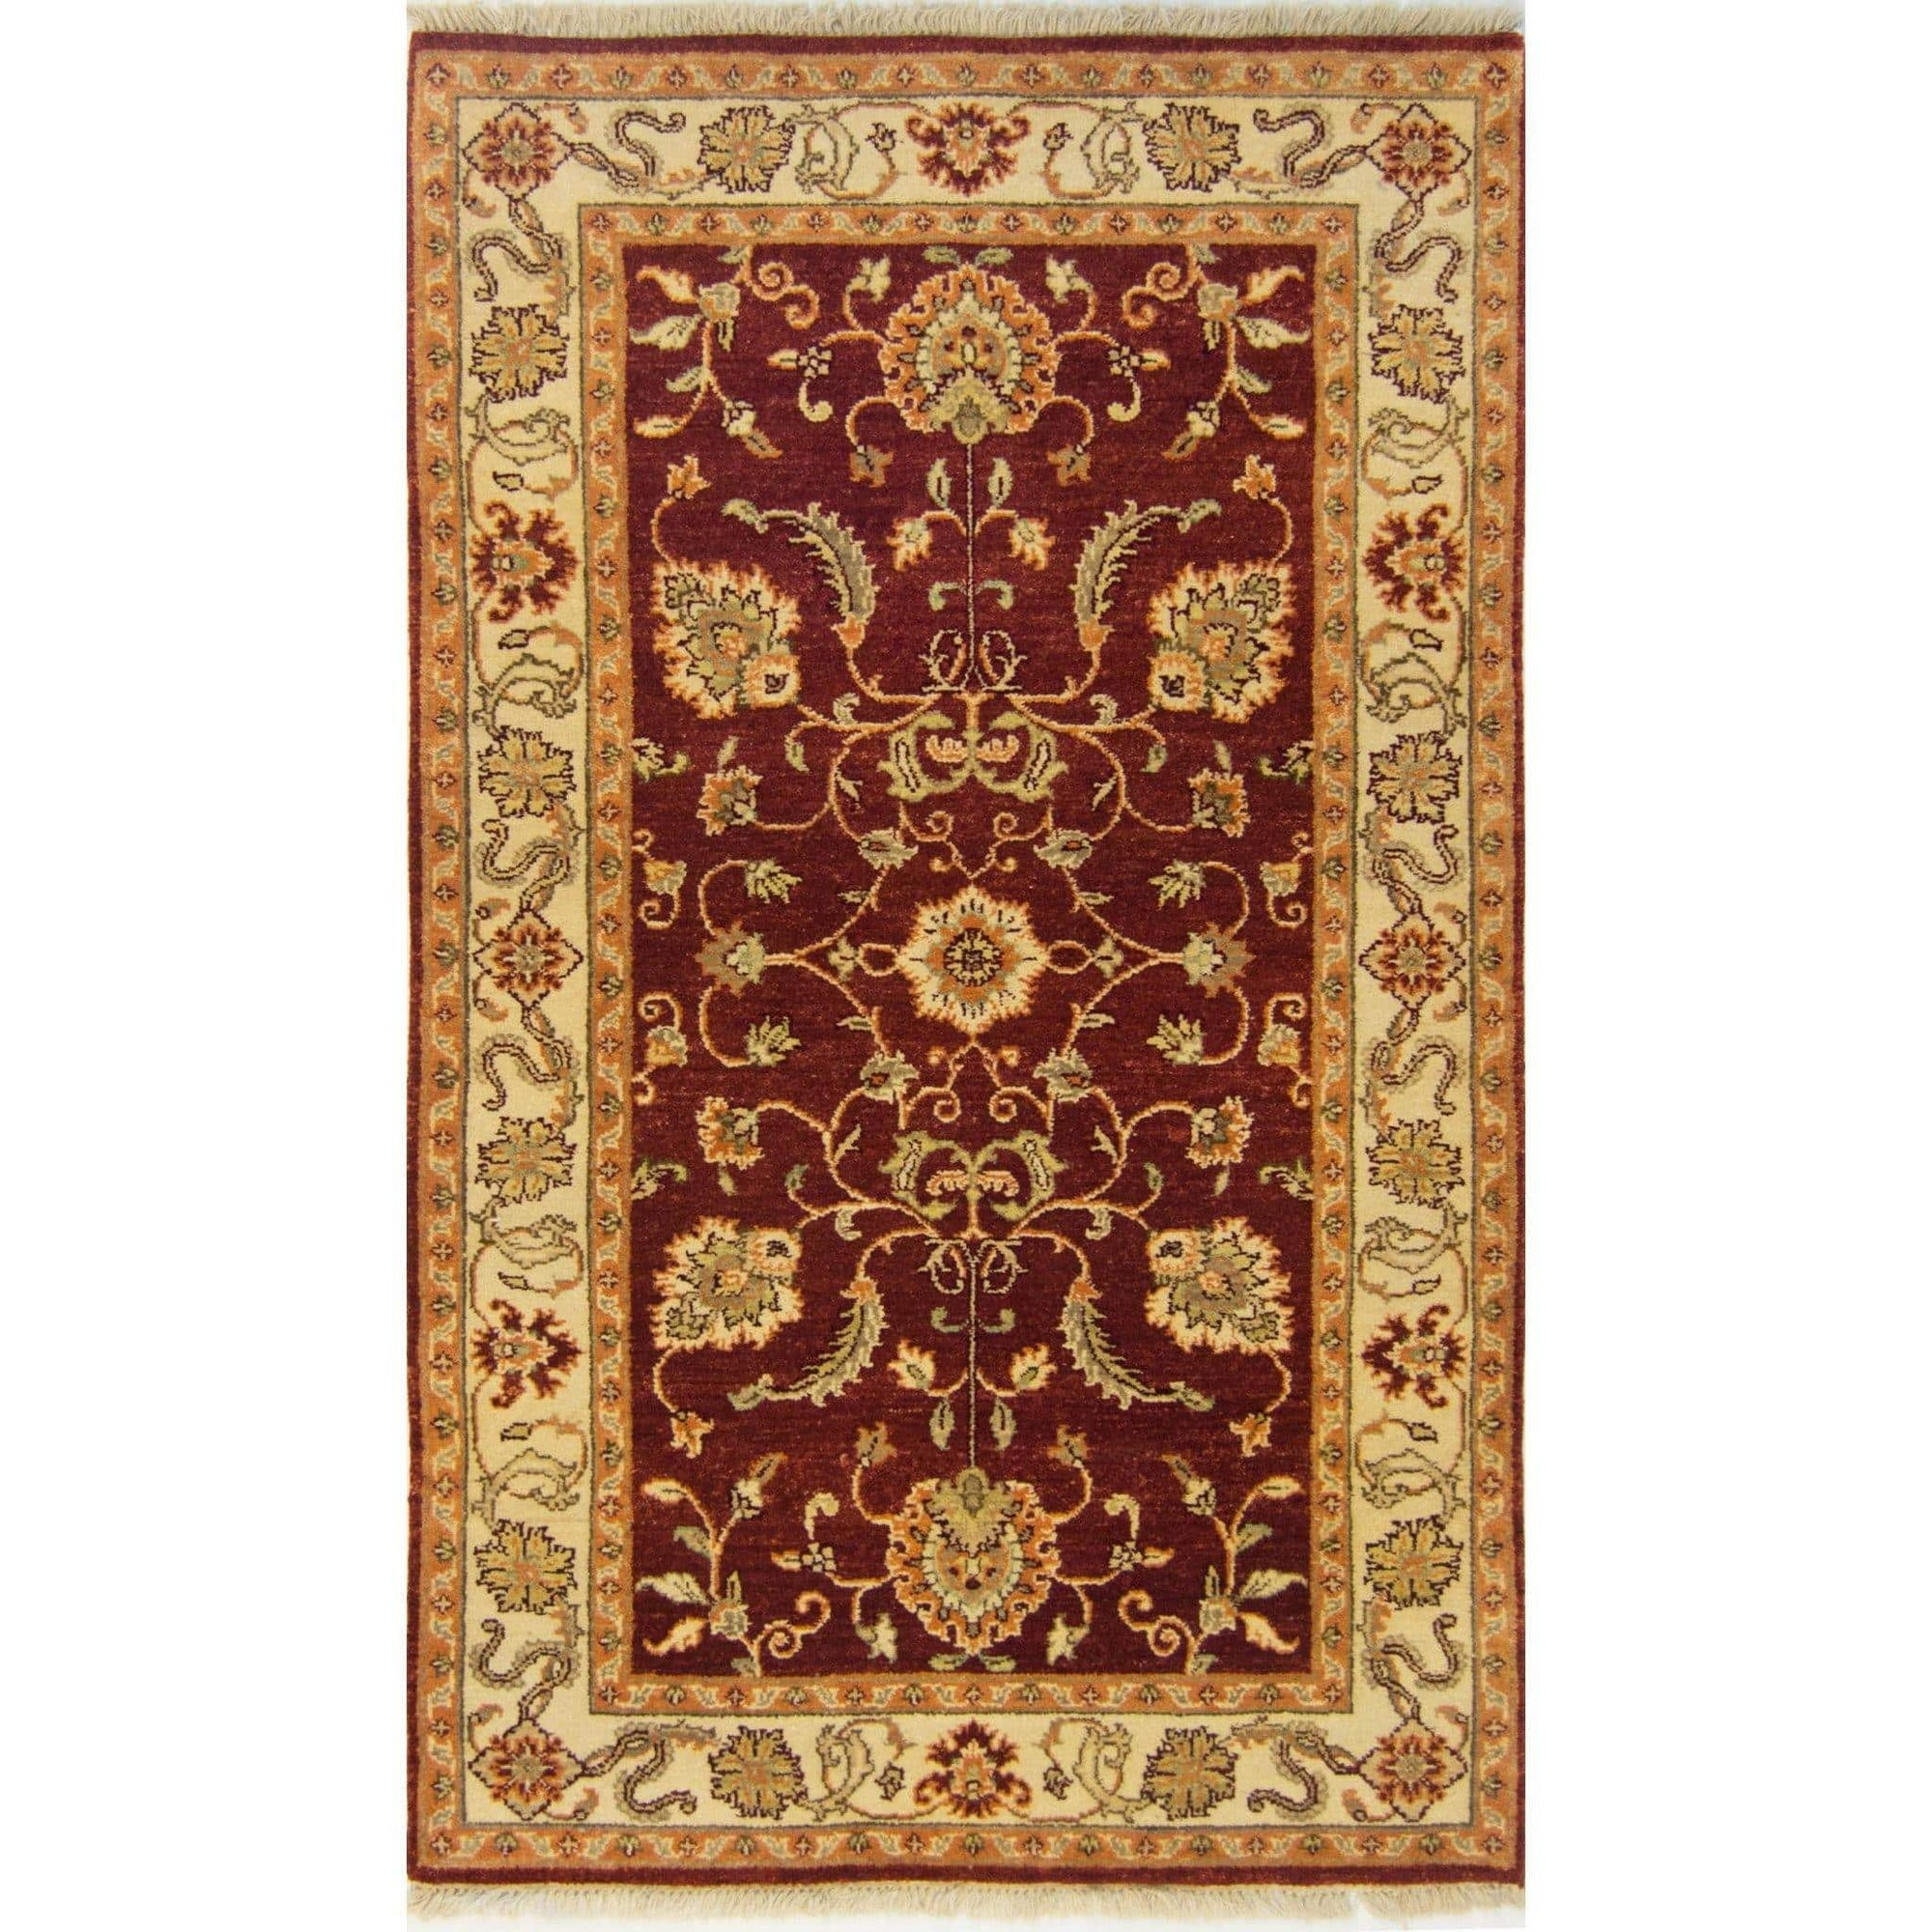 Hand-knotted Wool Small Chobi Rug 94cm x 152cm Persian-Rug | House-of-Haghi | NewMarket | Auckland | NZ | Handmade Persian Rugs | Hand Knotted Persian Rugs